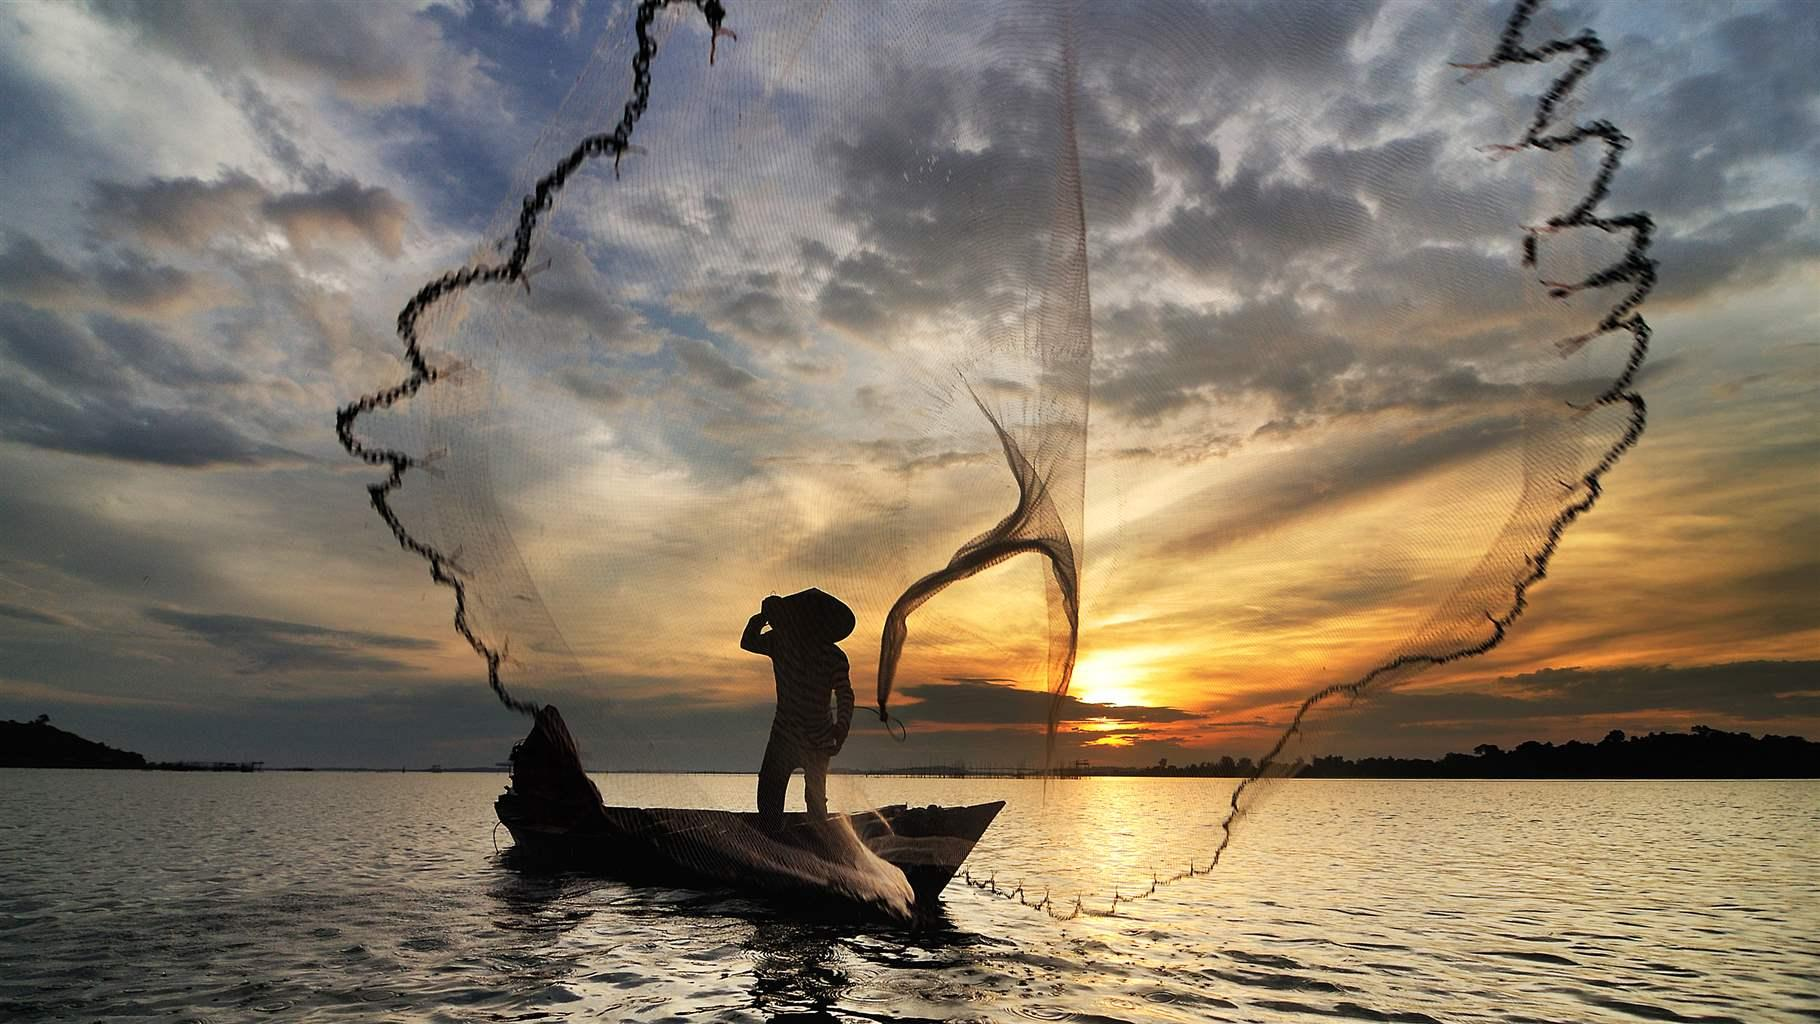 The Link Between Effective Fisheries Management and Ending